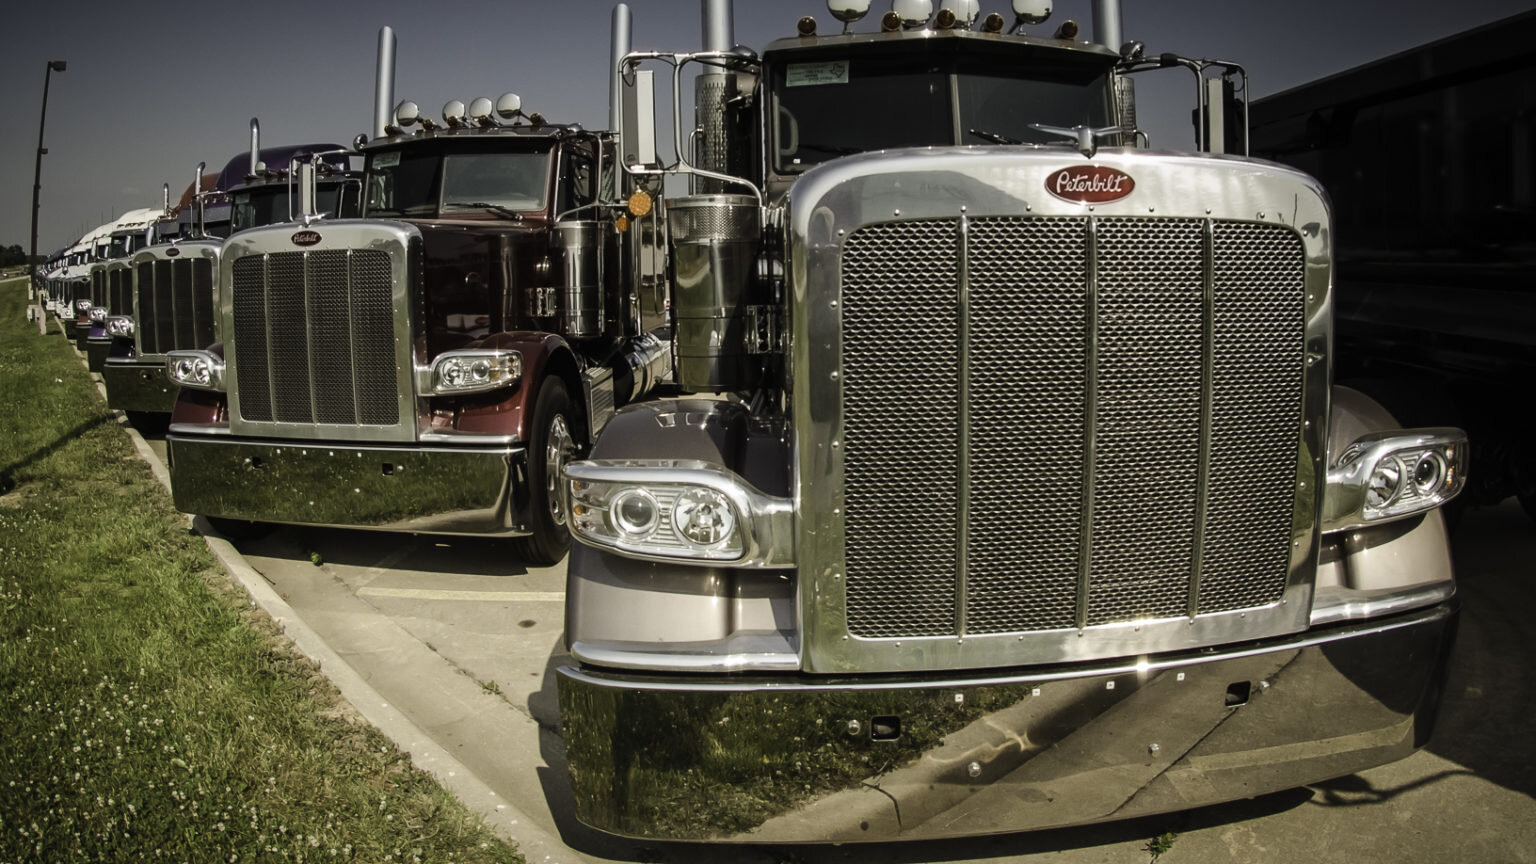 Used truck sales and prices are beginning to firm for dealers and in auctions after months of depressed values. (Photo: Peterbilt)